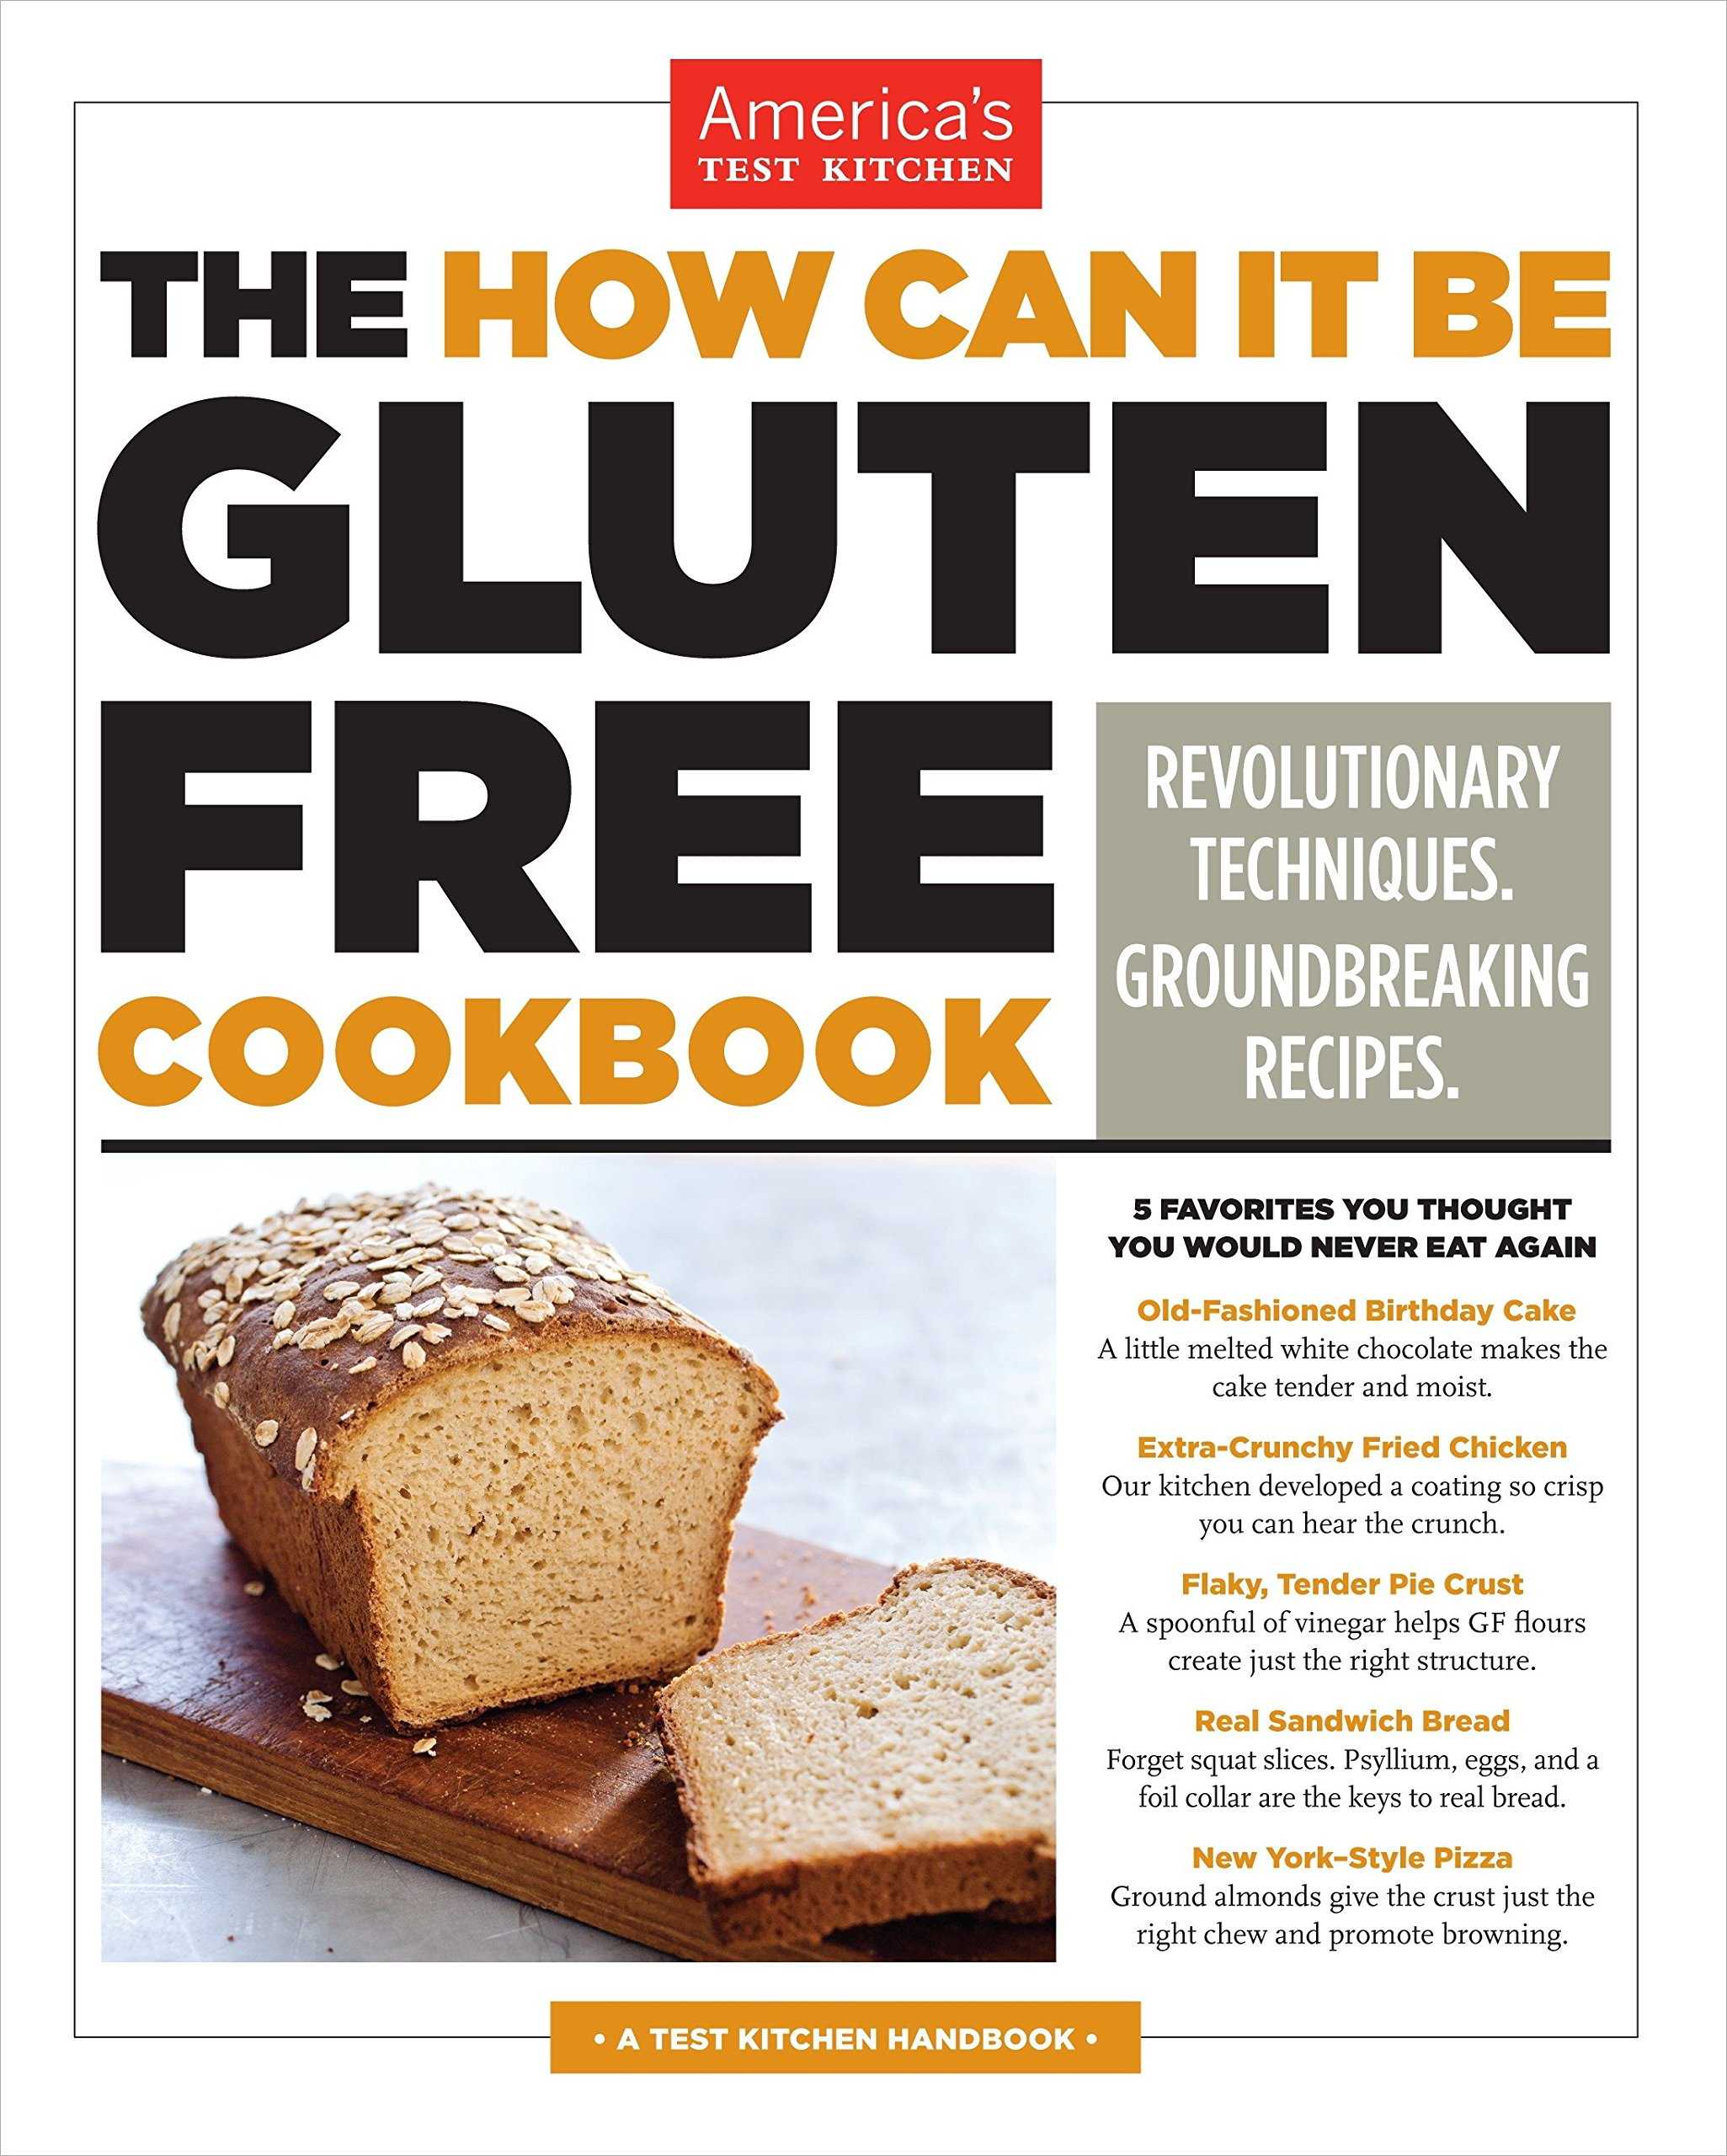 The how can it be gluten free cookbook revolutionary techniques the how can it be gluten free cookbook revolutionary techniques groundbreaking recipes americas test kitchen 9781936493616 amazon books forumfinder Gallery